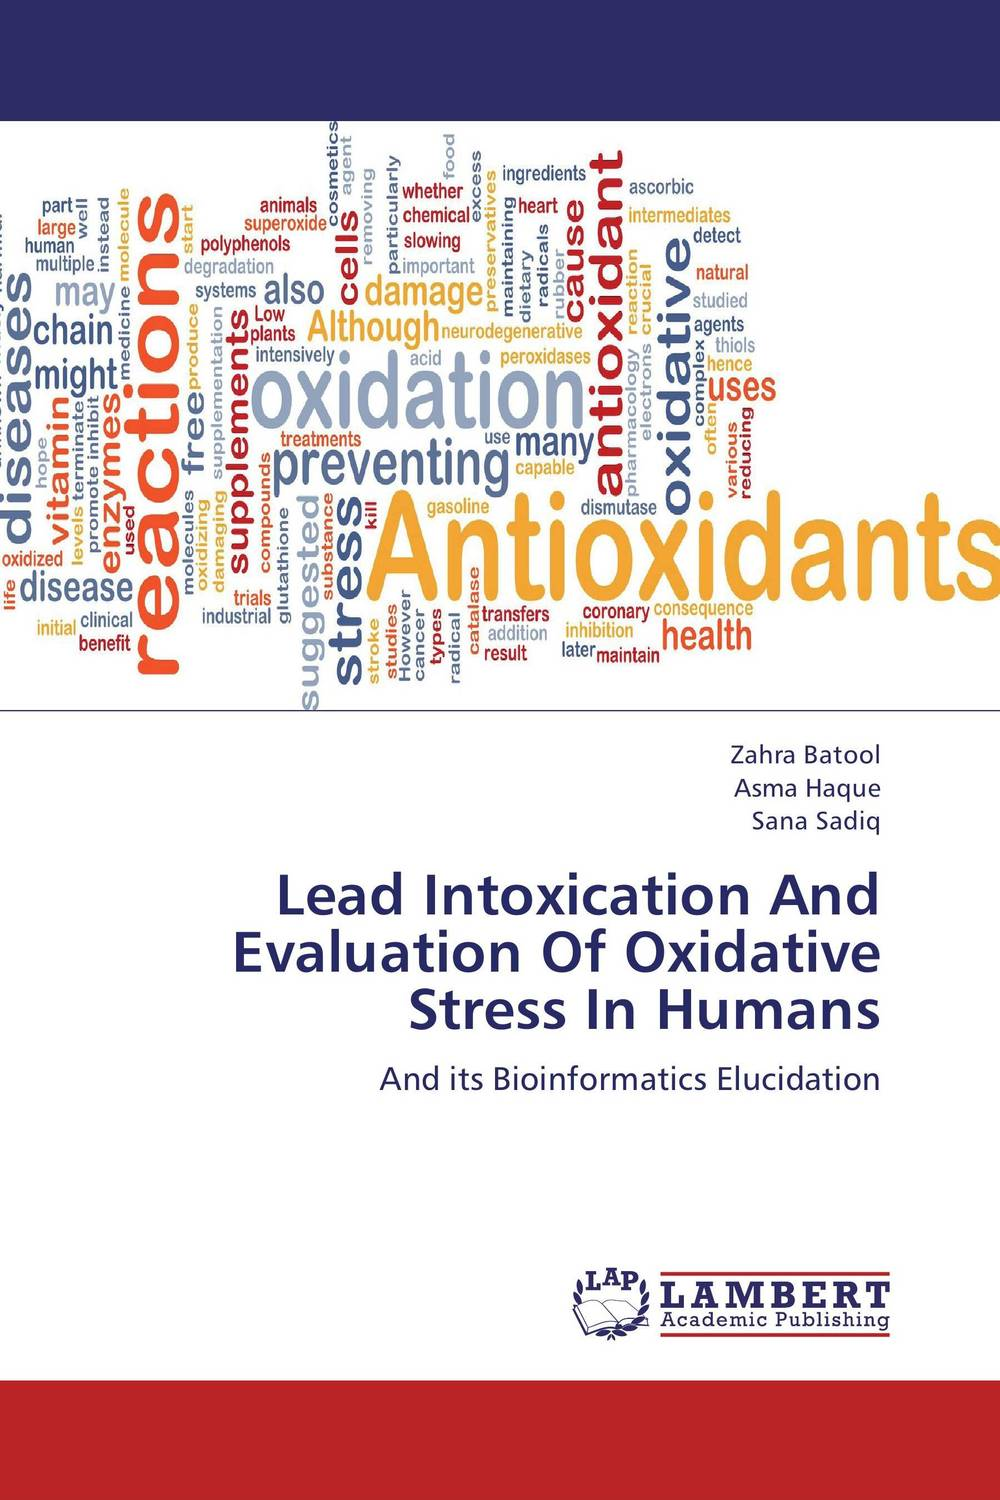 Lead Intoxication And Evaluation Of Oxidative Stress In Humans evaluation of pile failure mechanism by piv method